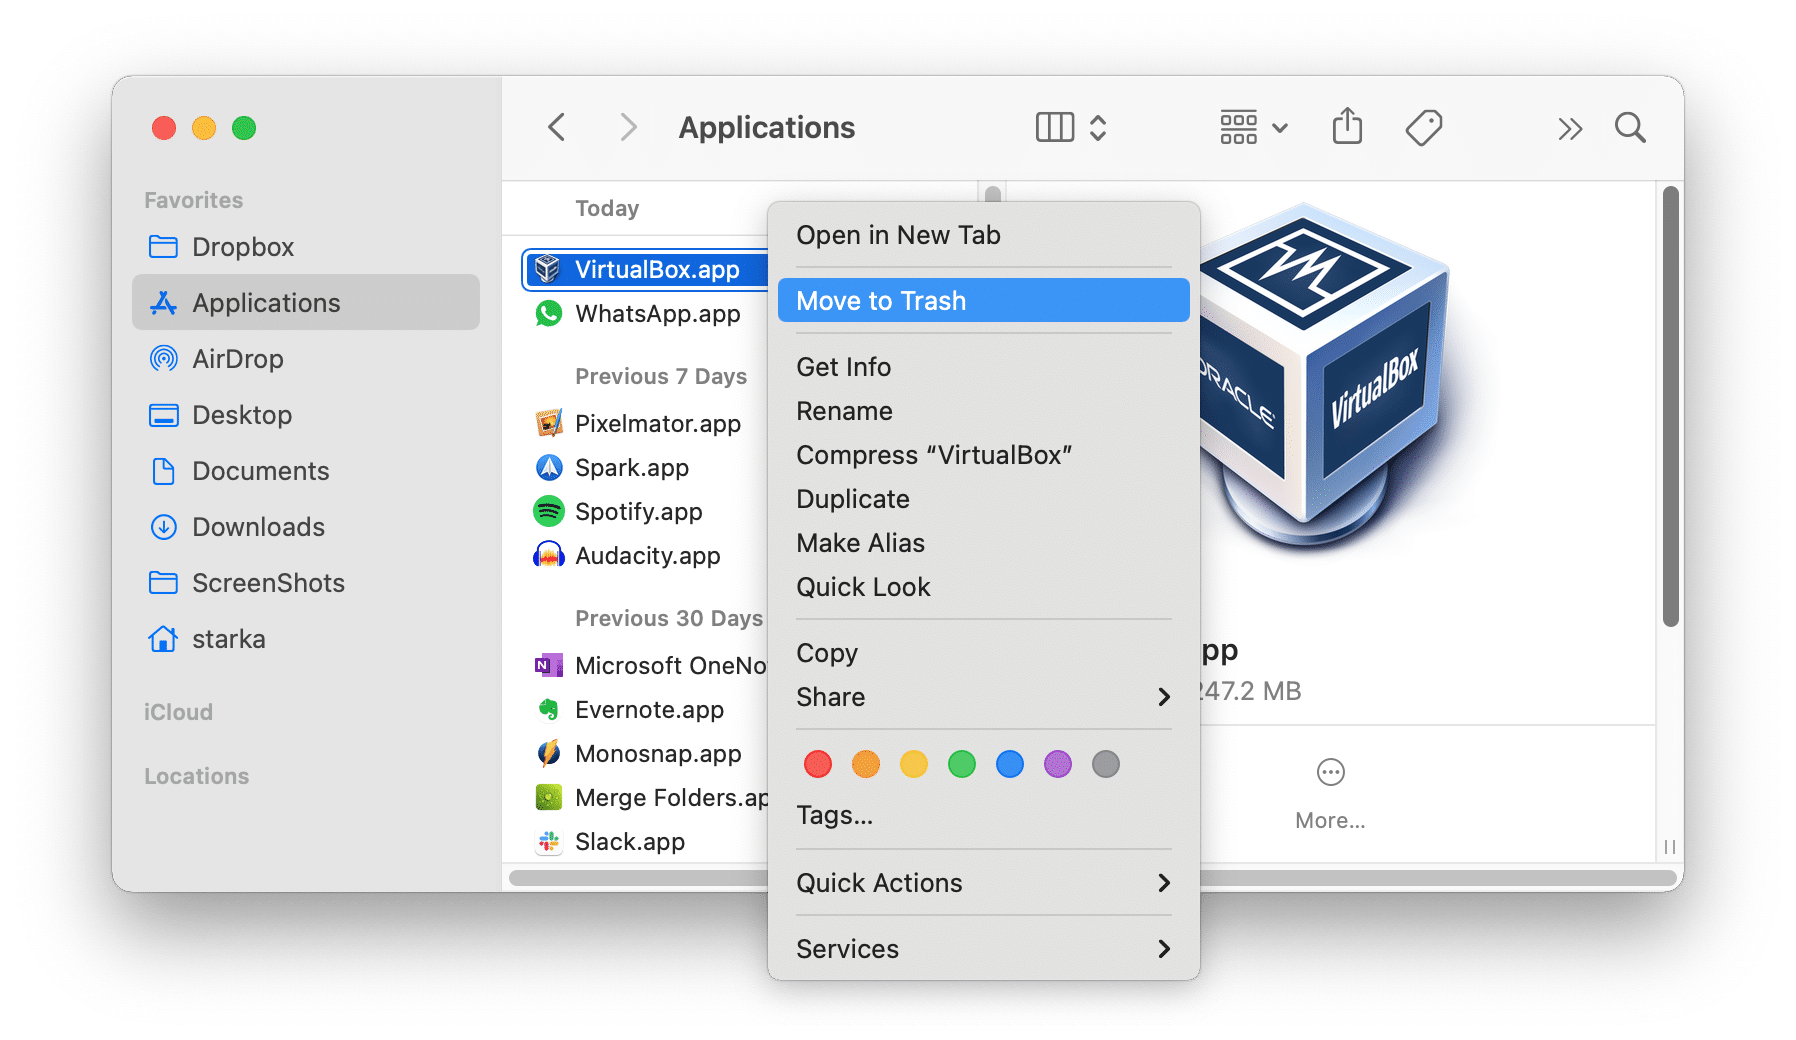 removing VirtualBox from the Applications folder